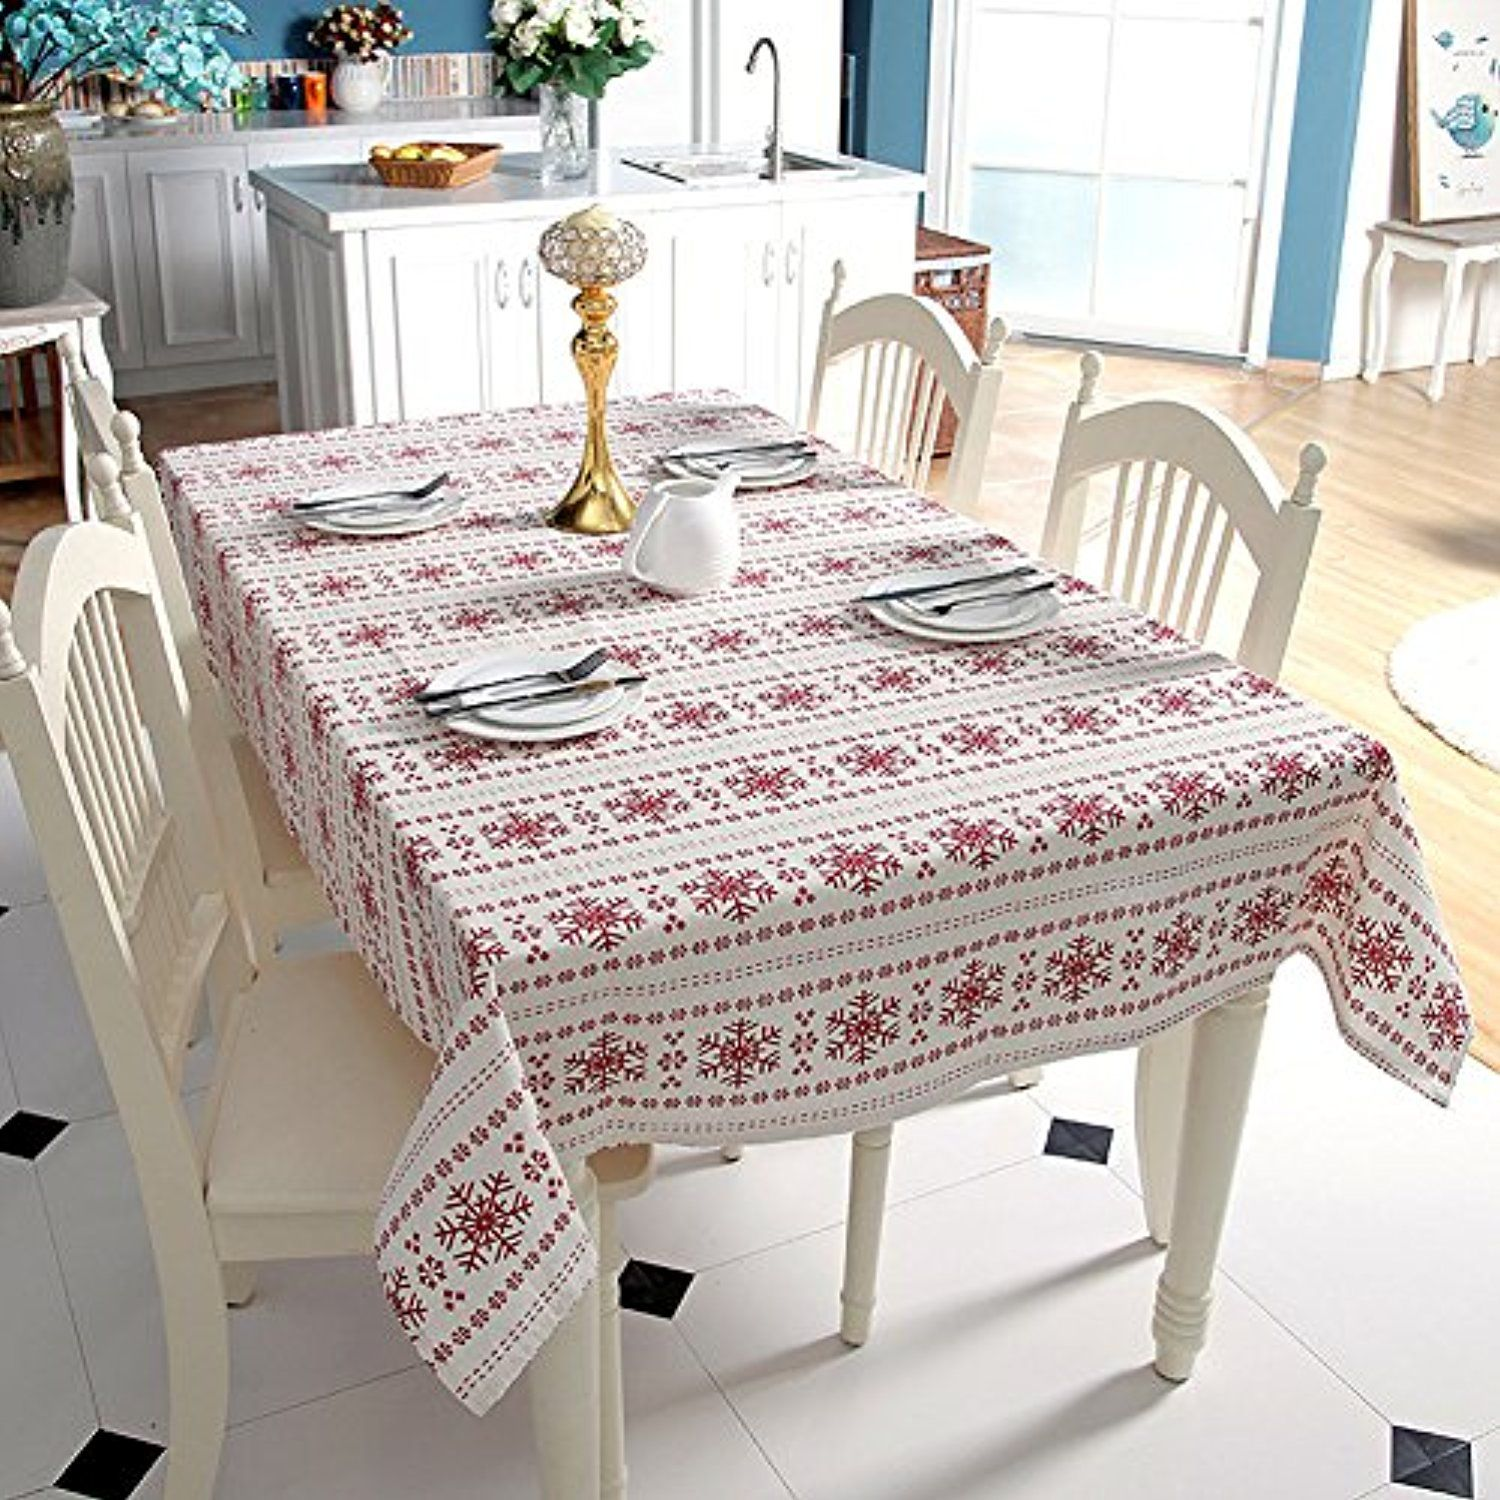 Christmas Red Snowflake Tablecloth Rectangle Table Cover For Dinner Picnic Home Decor Assorted Size 55 Christmas Table Cloth Dining Table Cloth Christmas Table